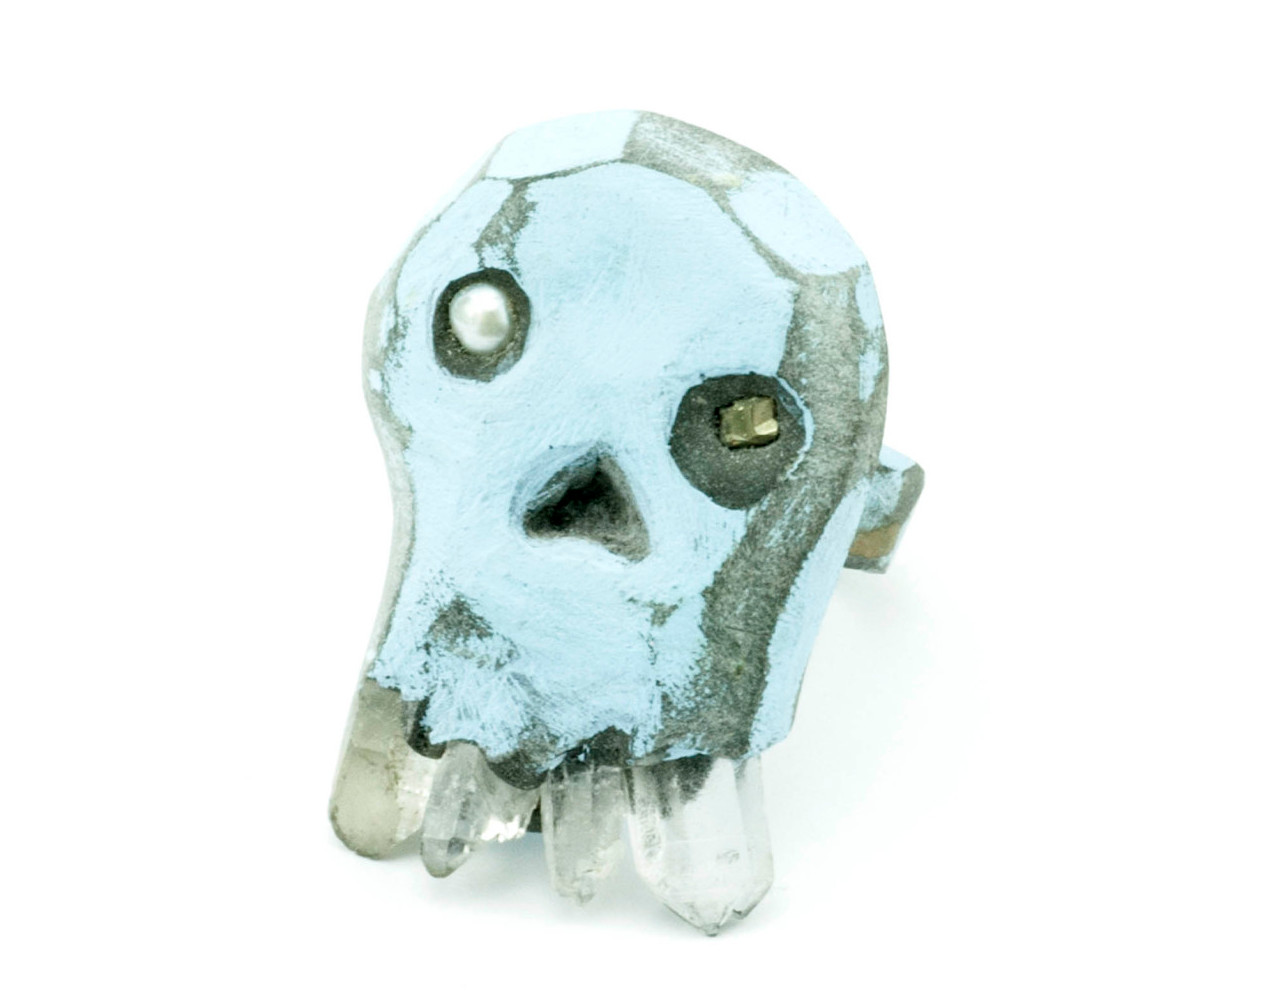 Skulls boing boing eccentric skull ring voltagebd Image collections